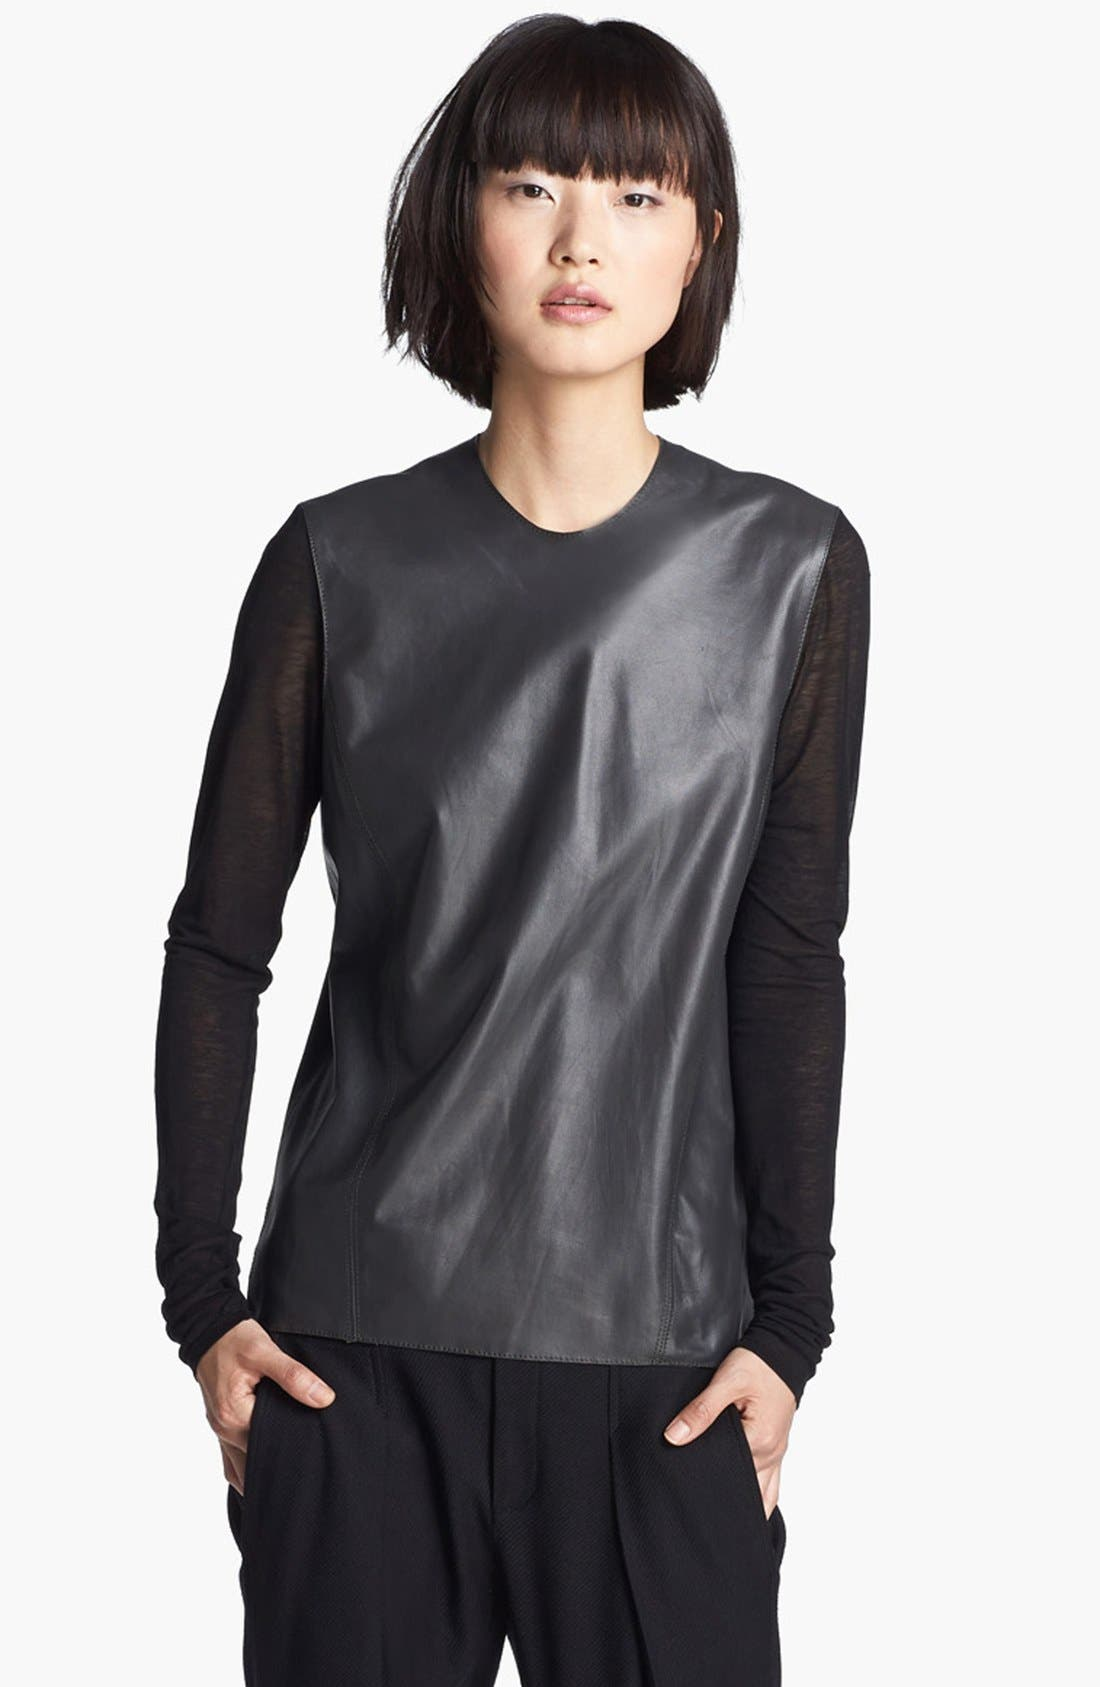 Alternate Image 1 Selected - Helmut Lang Knit Sleeve Leather Top